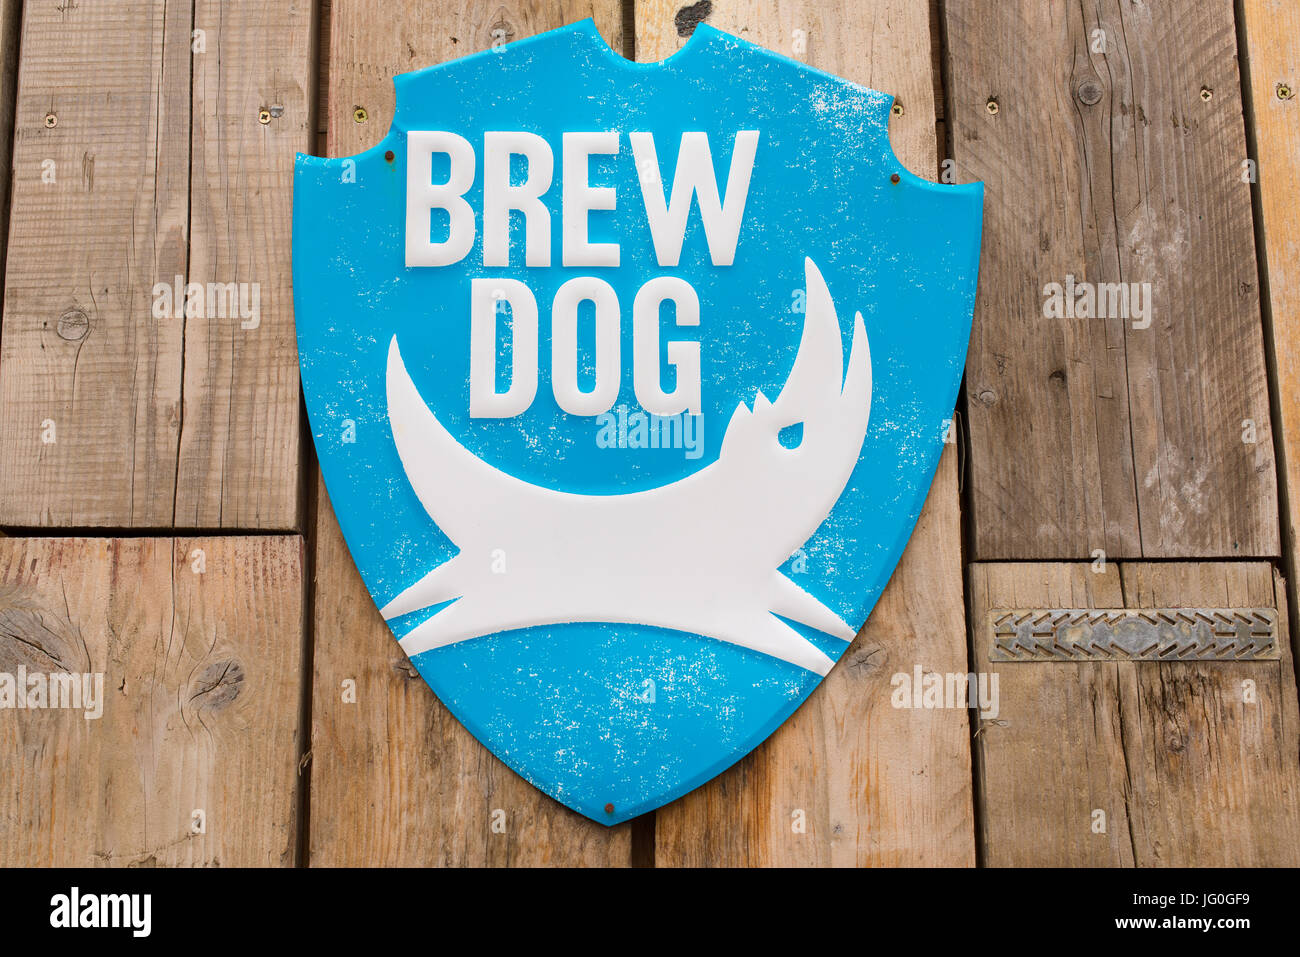 Brew Dog Brewery Logo On A Metal Plate On A Wooden Wall Brewdog Is A Stock Photo Alamy